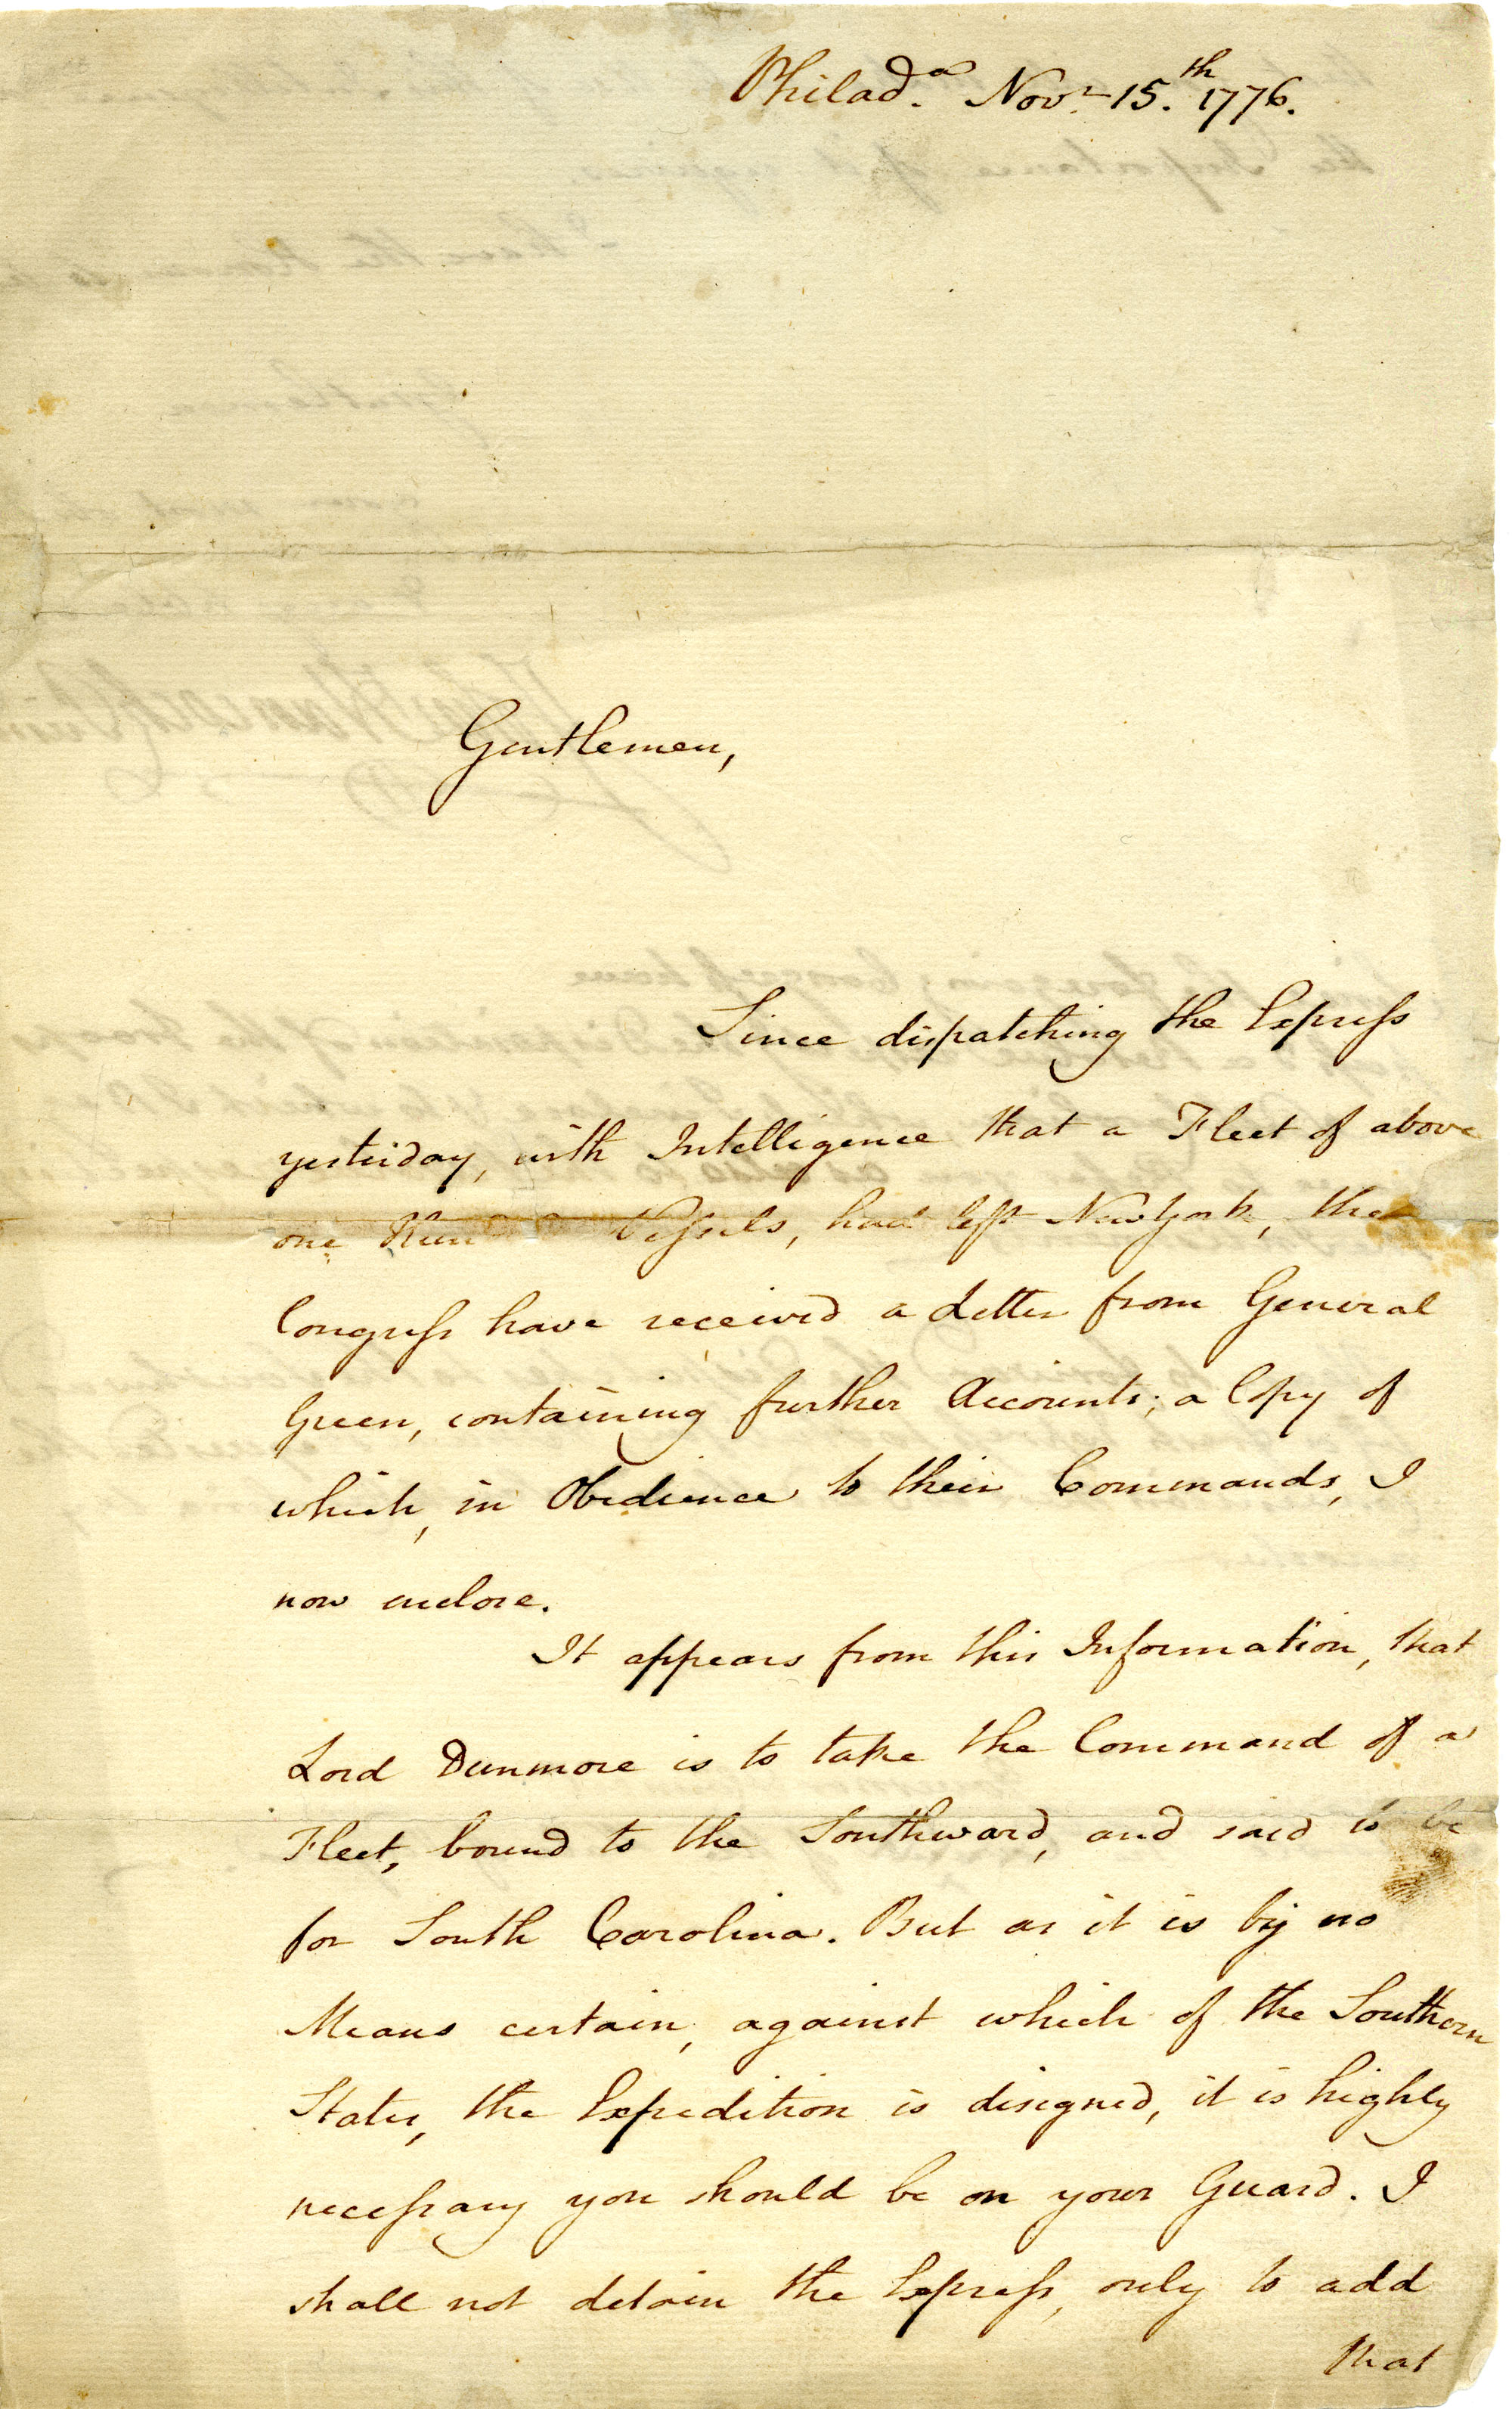 Letter from John Hancock to the Governor and Council of the State of Virginia